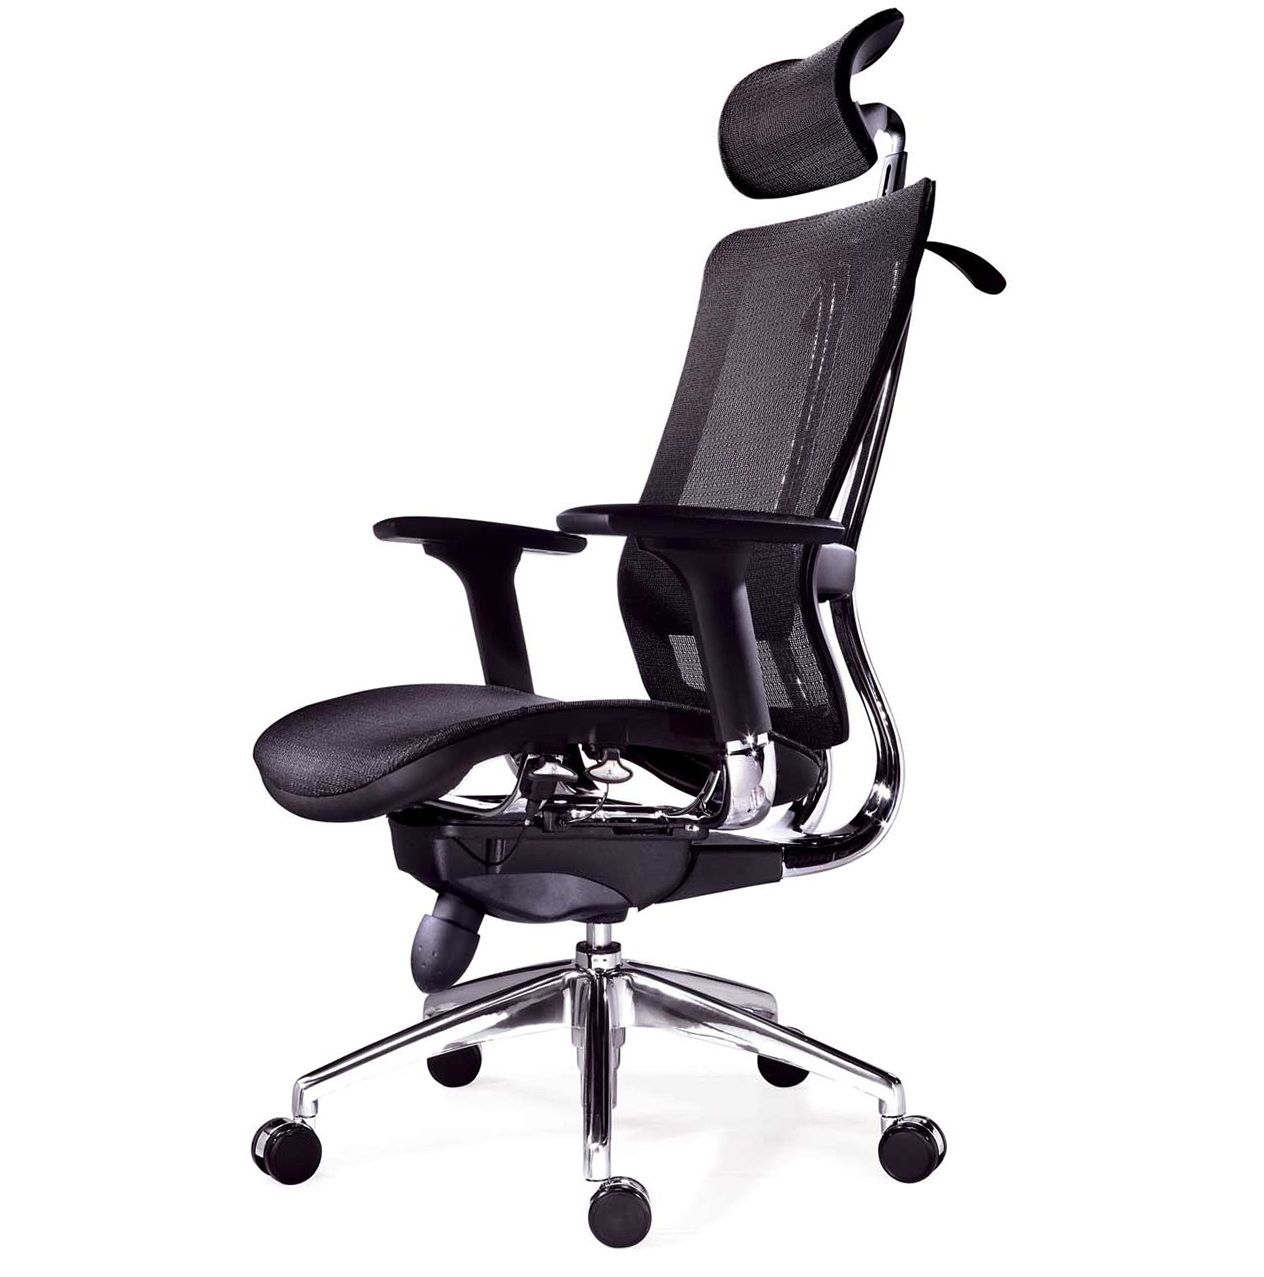 Home Chairs Back Problems Swivel Chair Origin Pin By Easy Wood Projects On Modern Interior Ideas In 2018 Best Office For Cool Furniture Check More At Http